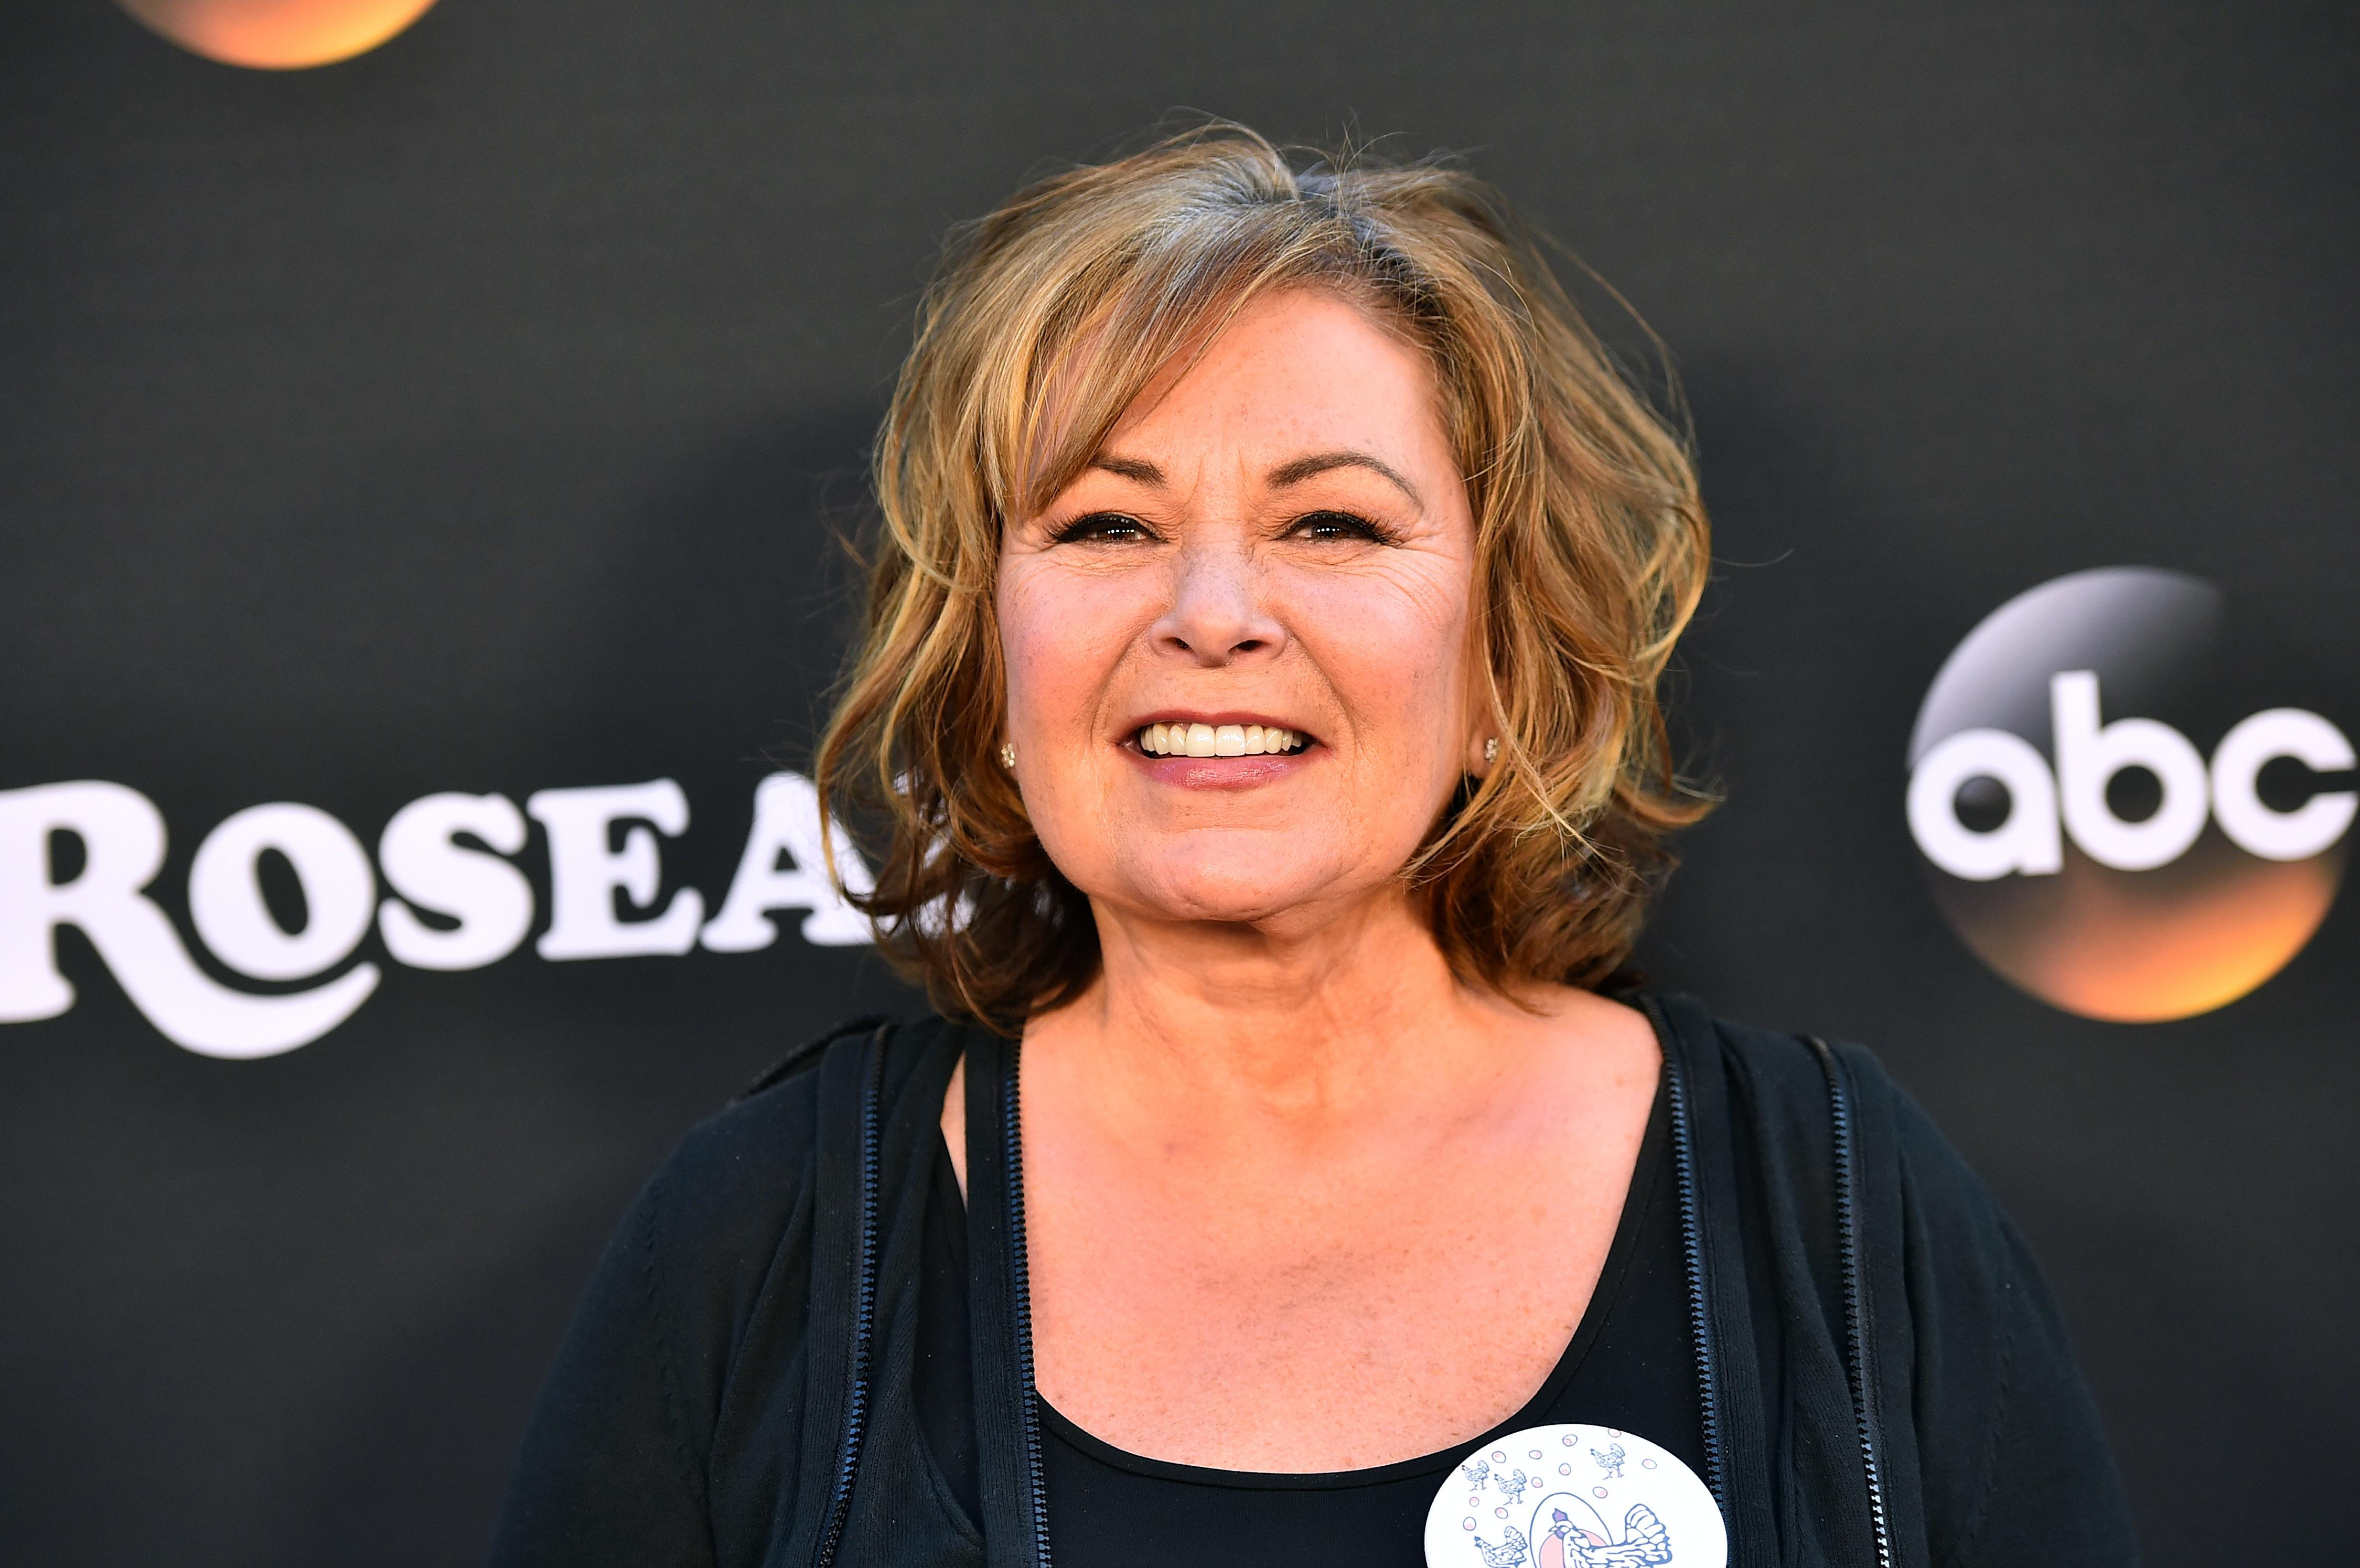 Roseanne Barr at the premiere of ABC's Roseanne on March 23, 2018 in Burbank, California.